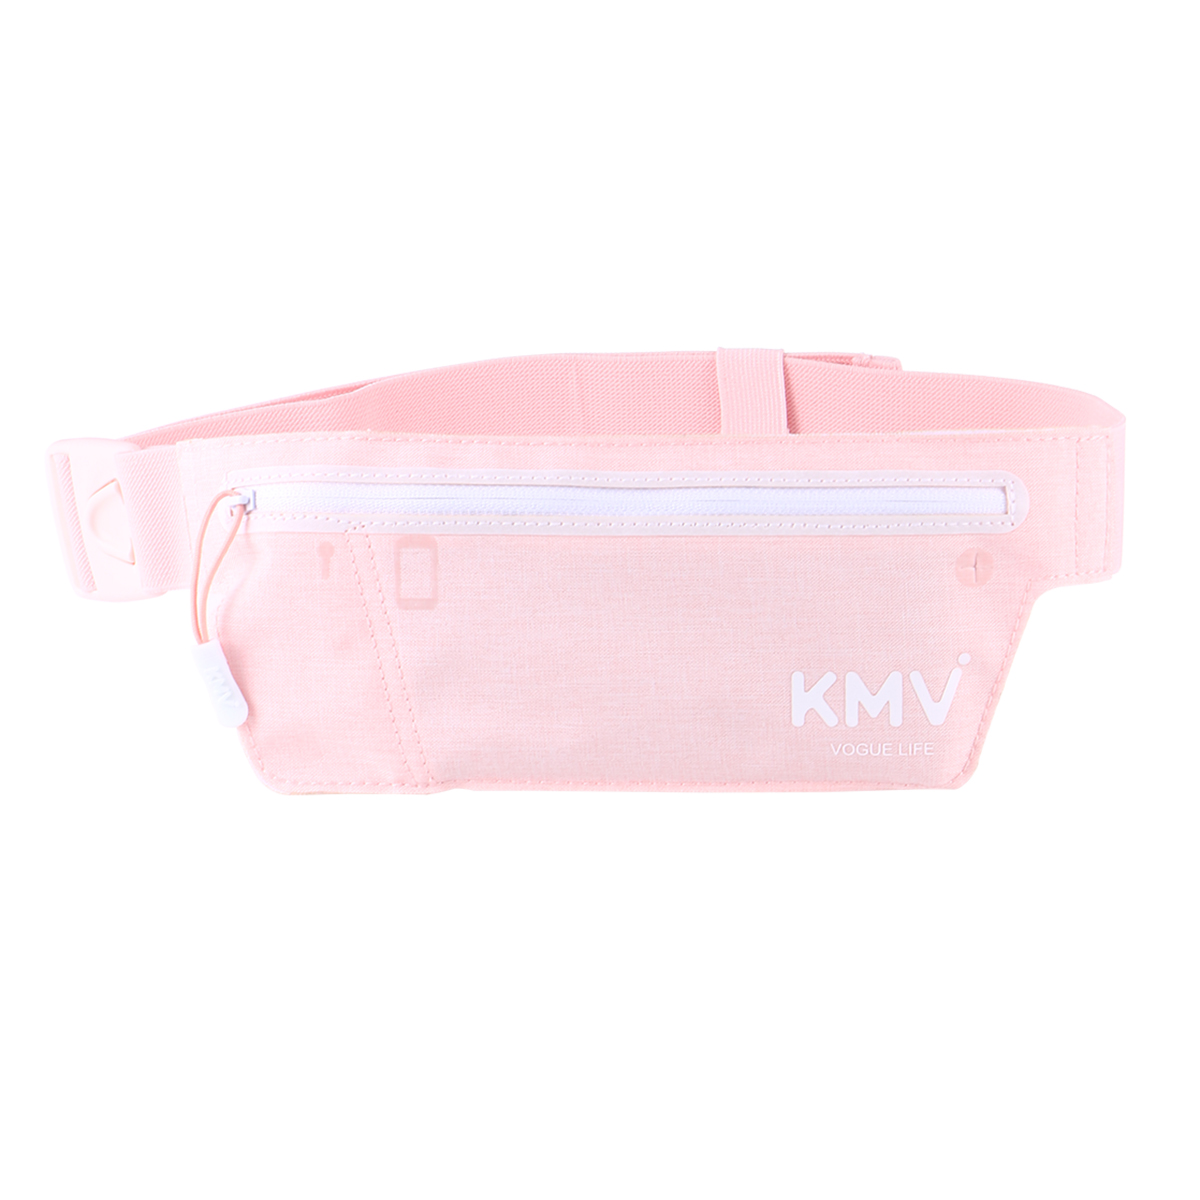 Beautiful Blooming Pattern White Pink Running Lumbar Pack For Travel Outdoor Sports Walking Travel Waist Pack,travel Pocket With Adjustable Belt